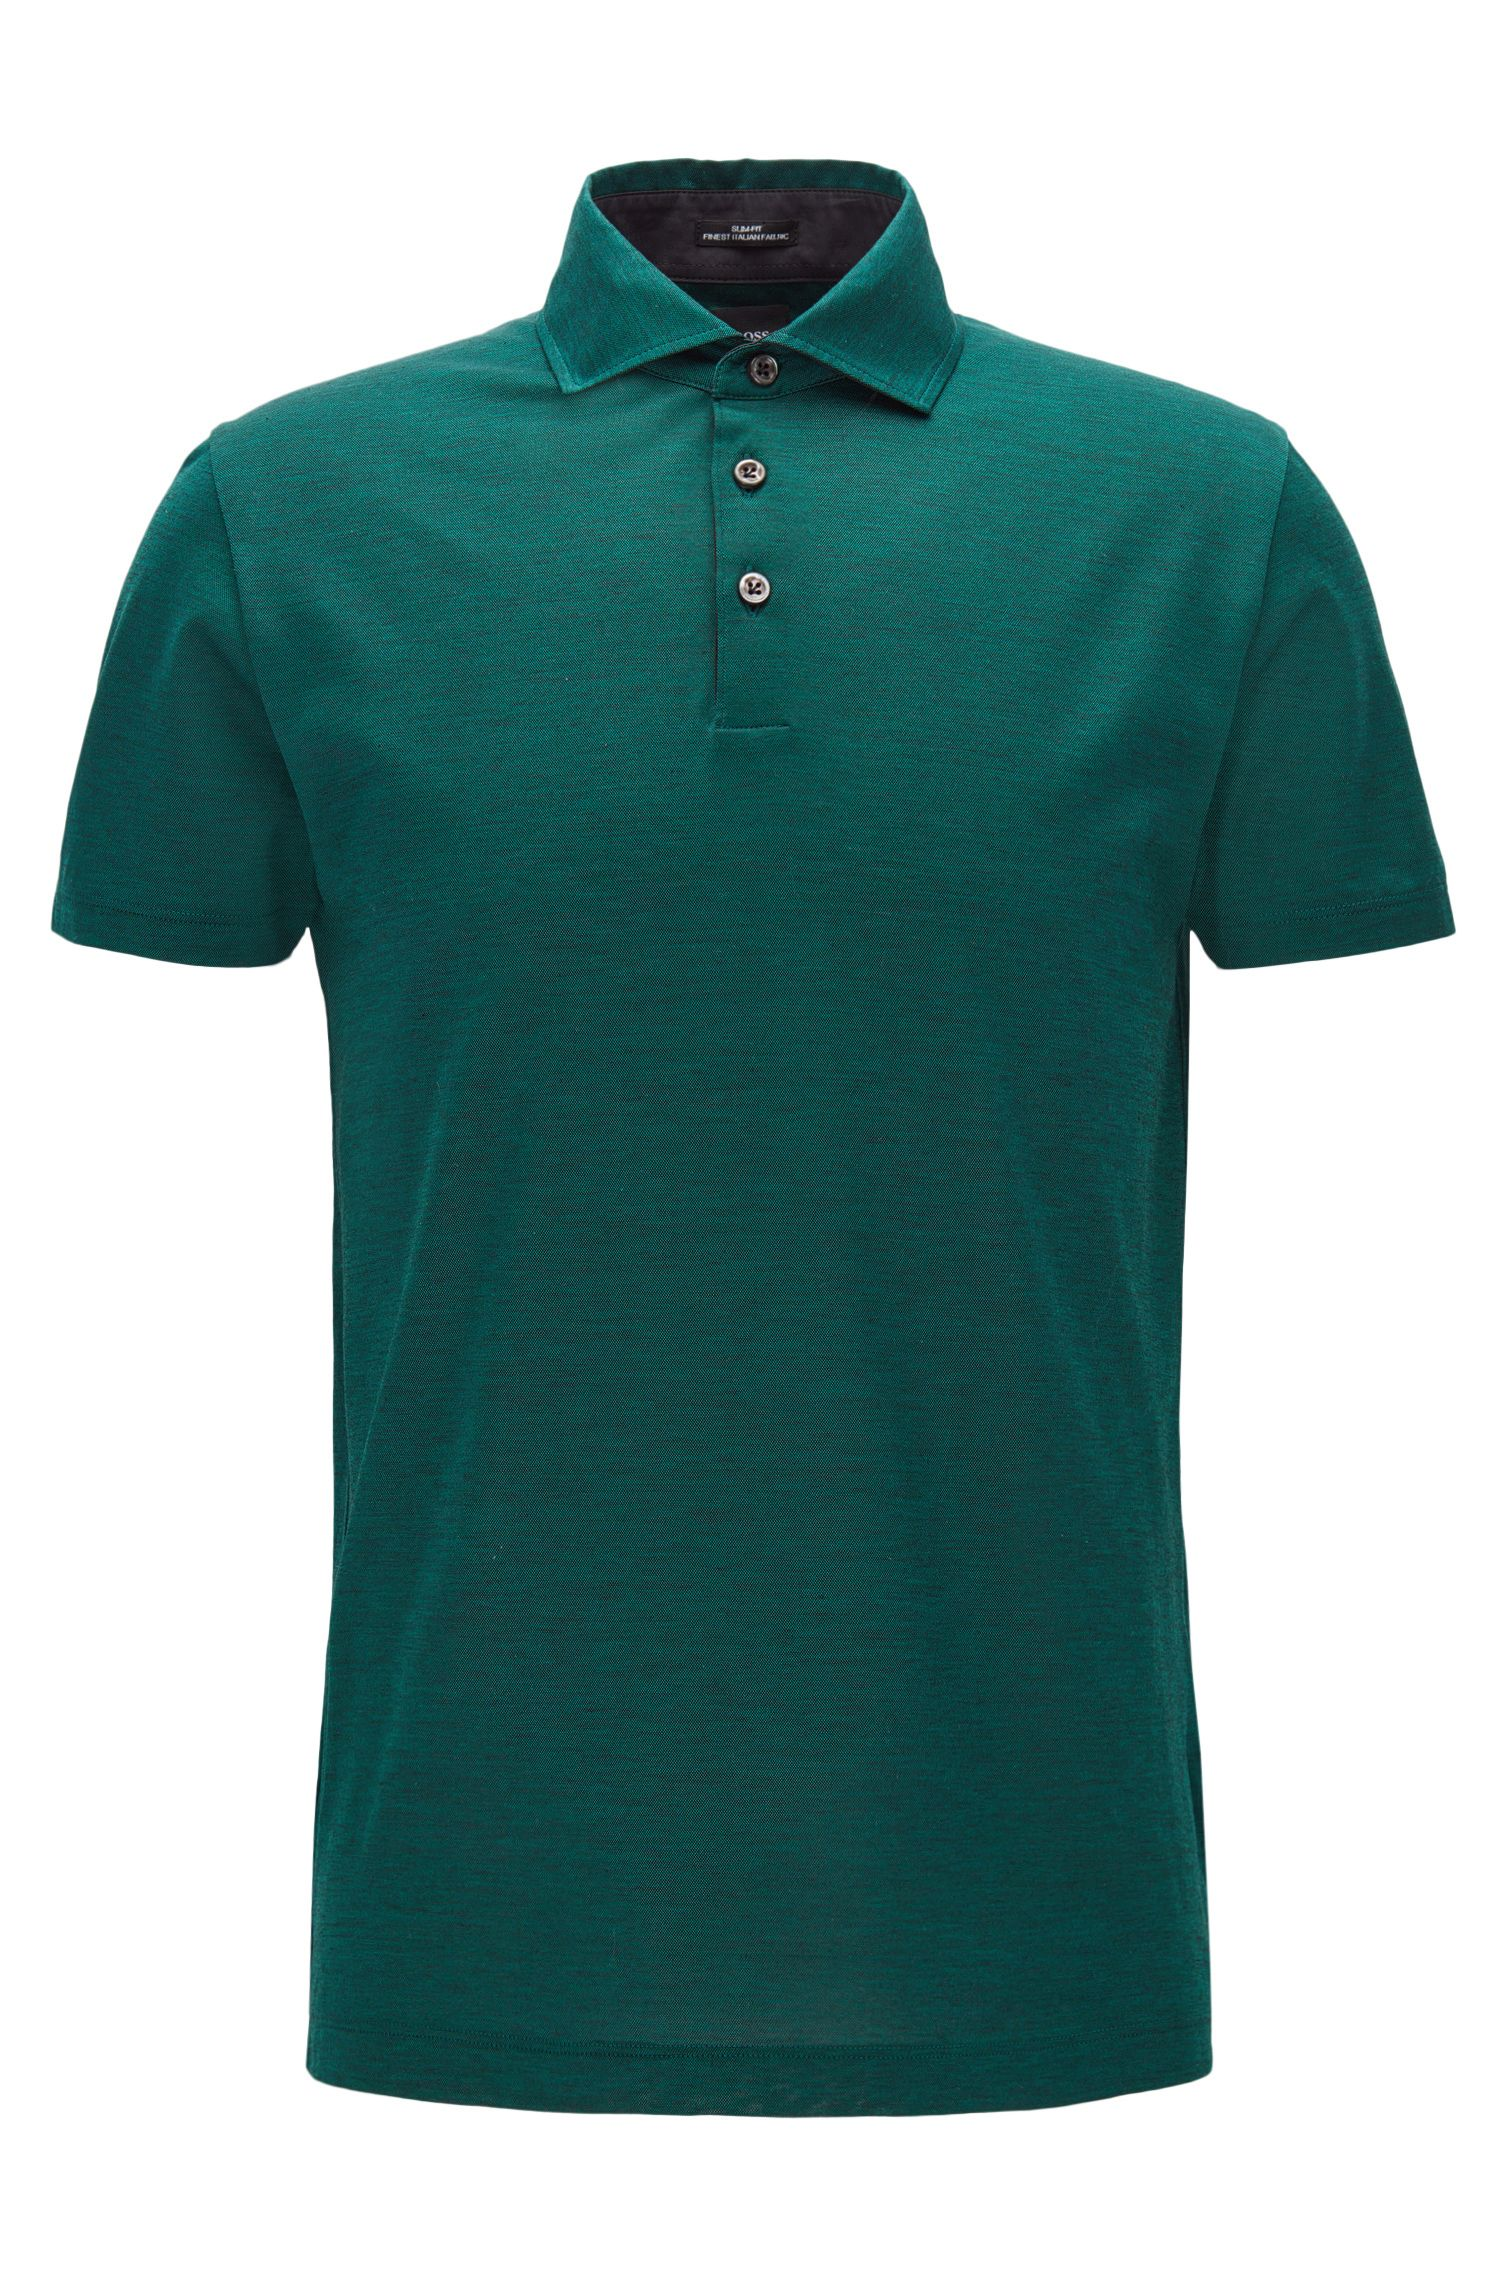 Jacquard Italian Cotton Polo Shirt, Slim Fit | T-Pryde, Open Green